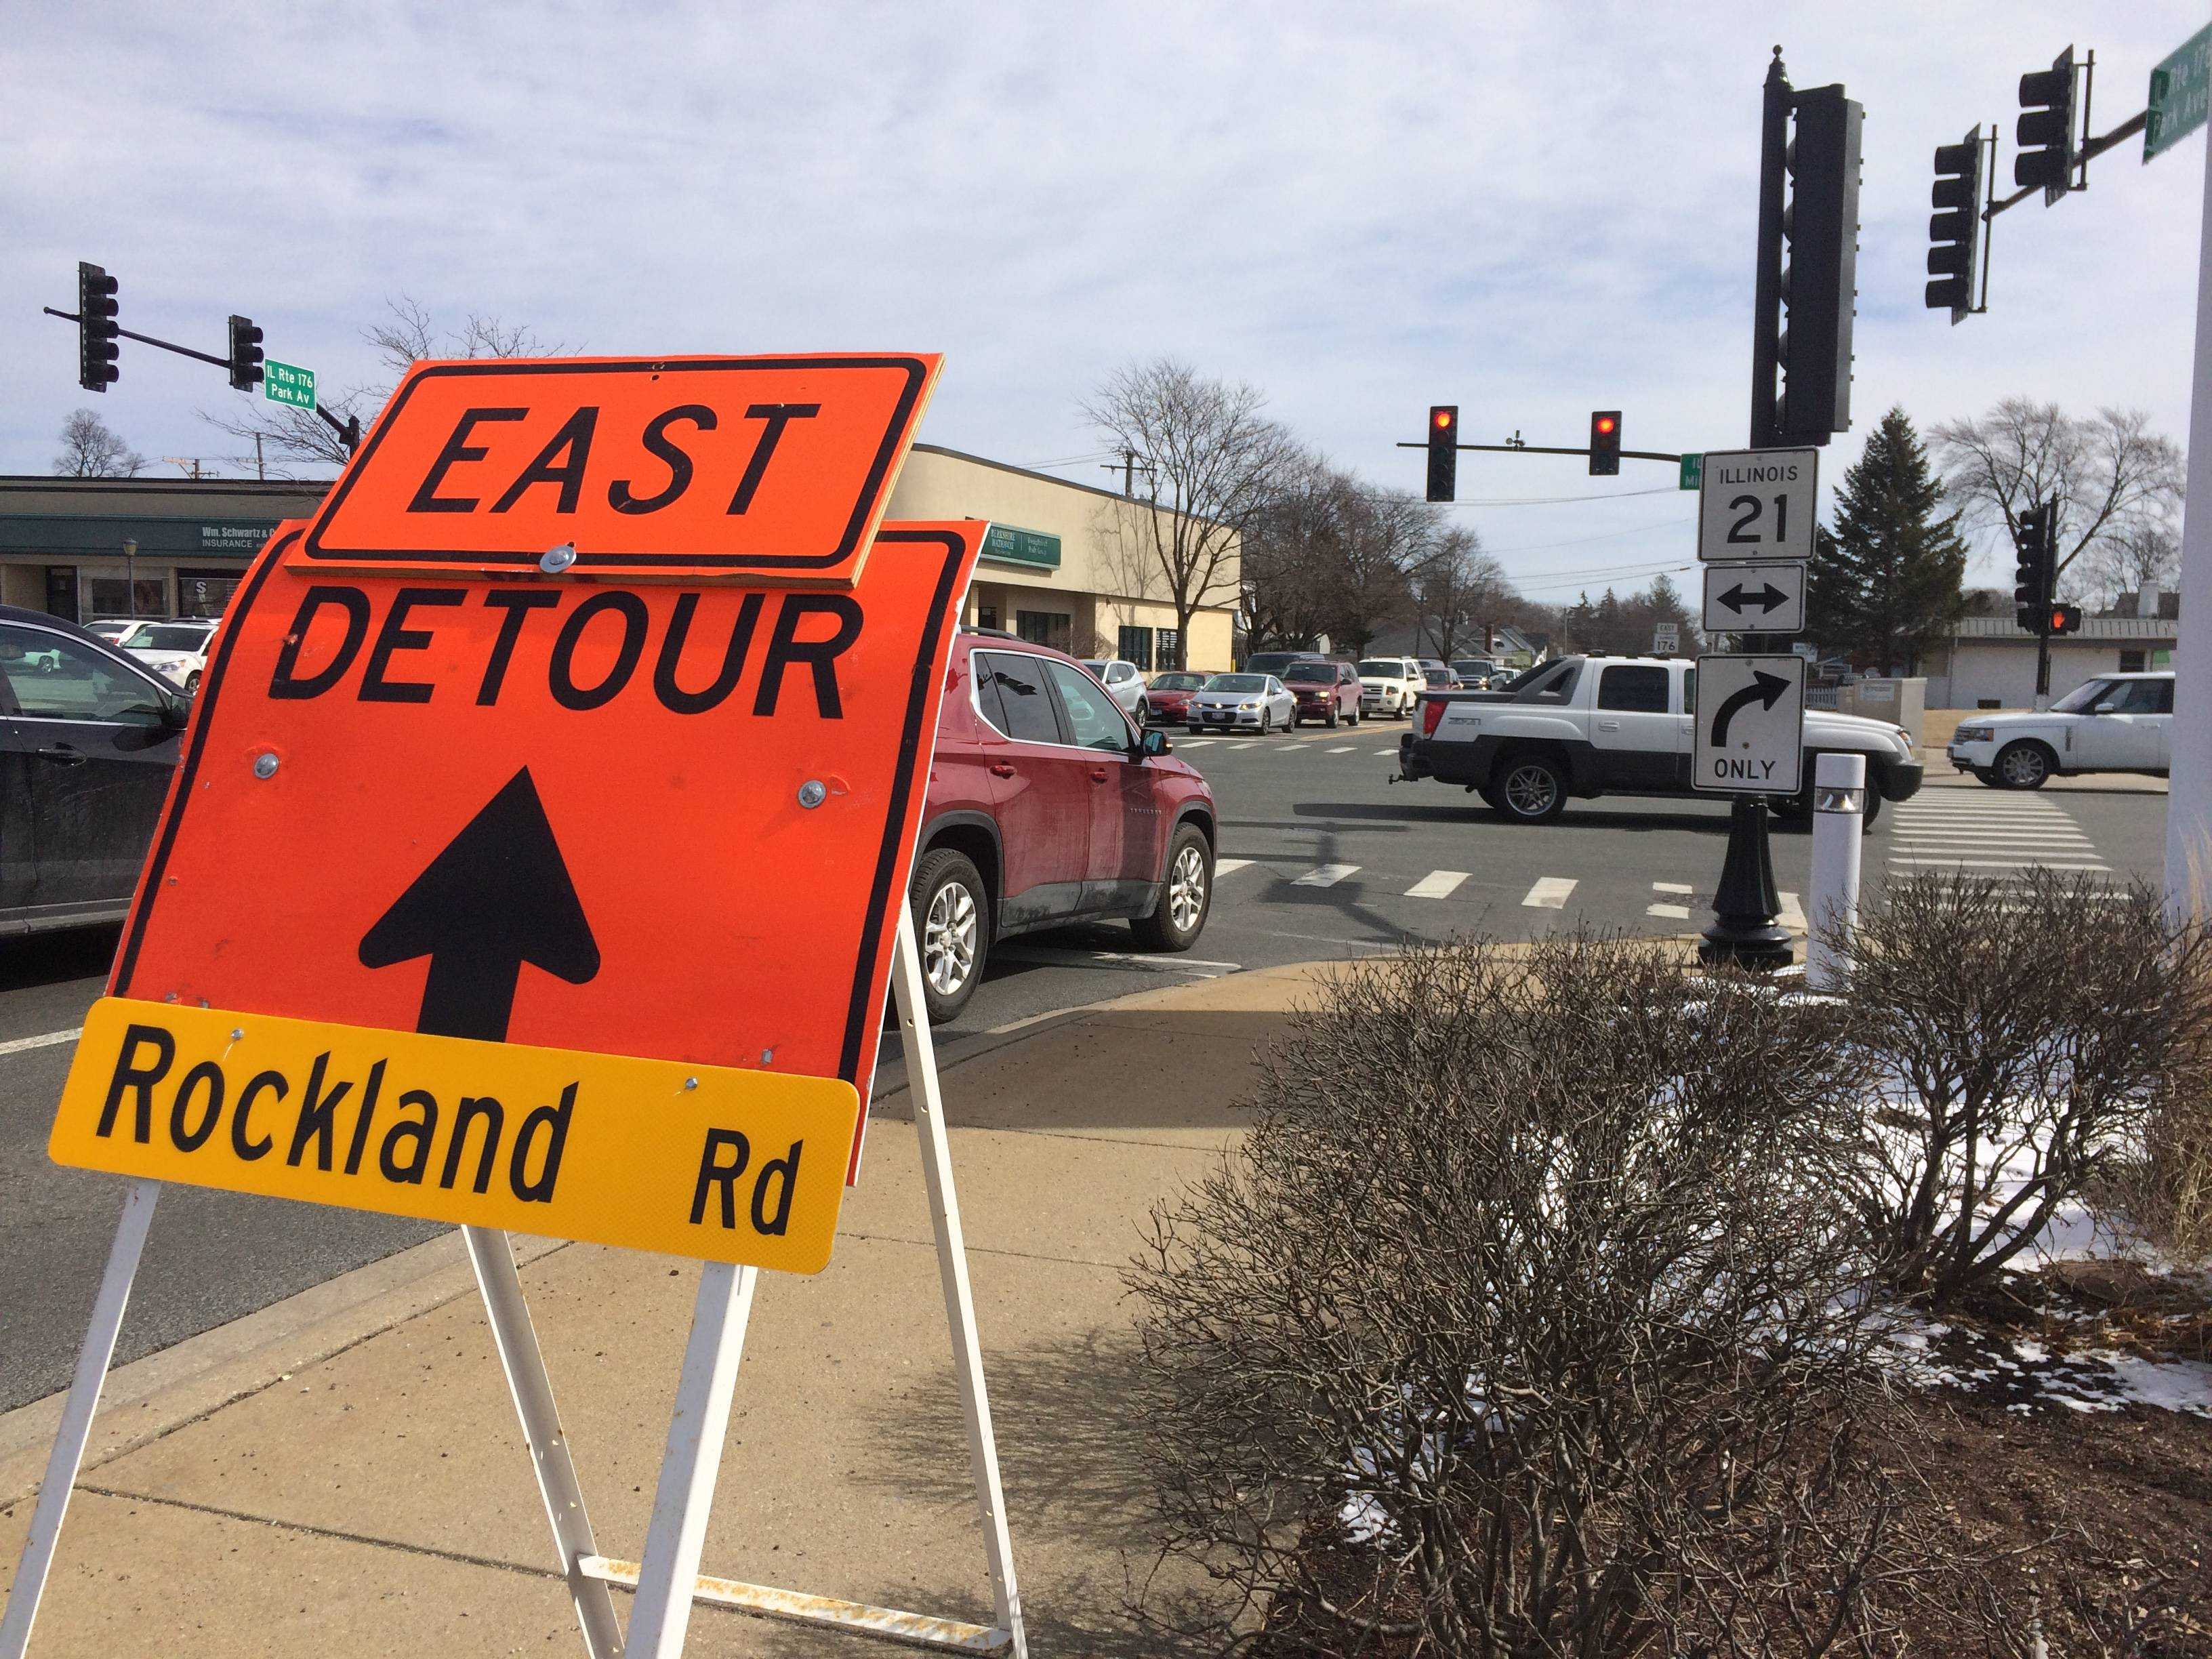 The Rockland Road bridge over the Des Plaines River in Libertyville has been closed and traffic detoured since Feb. 1.